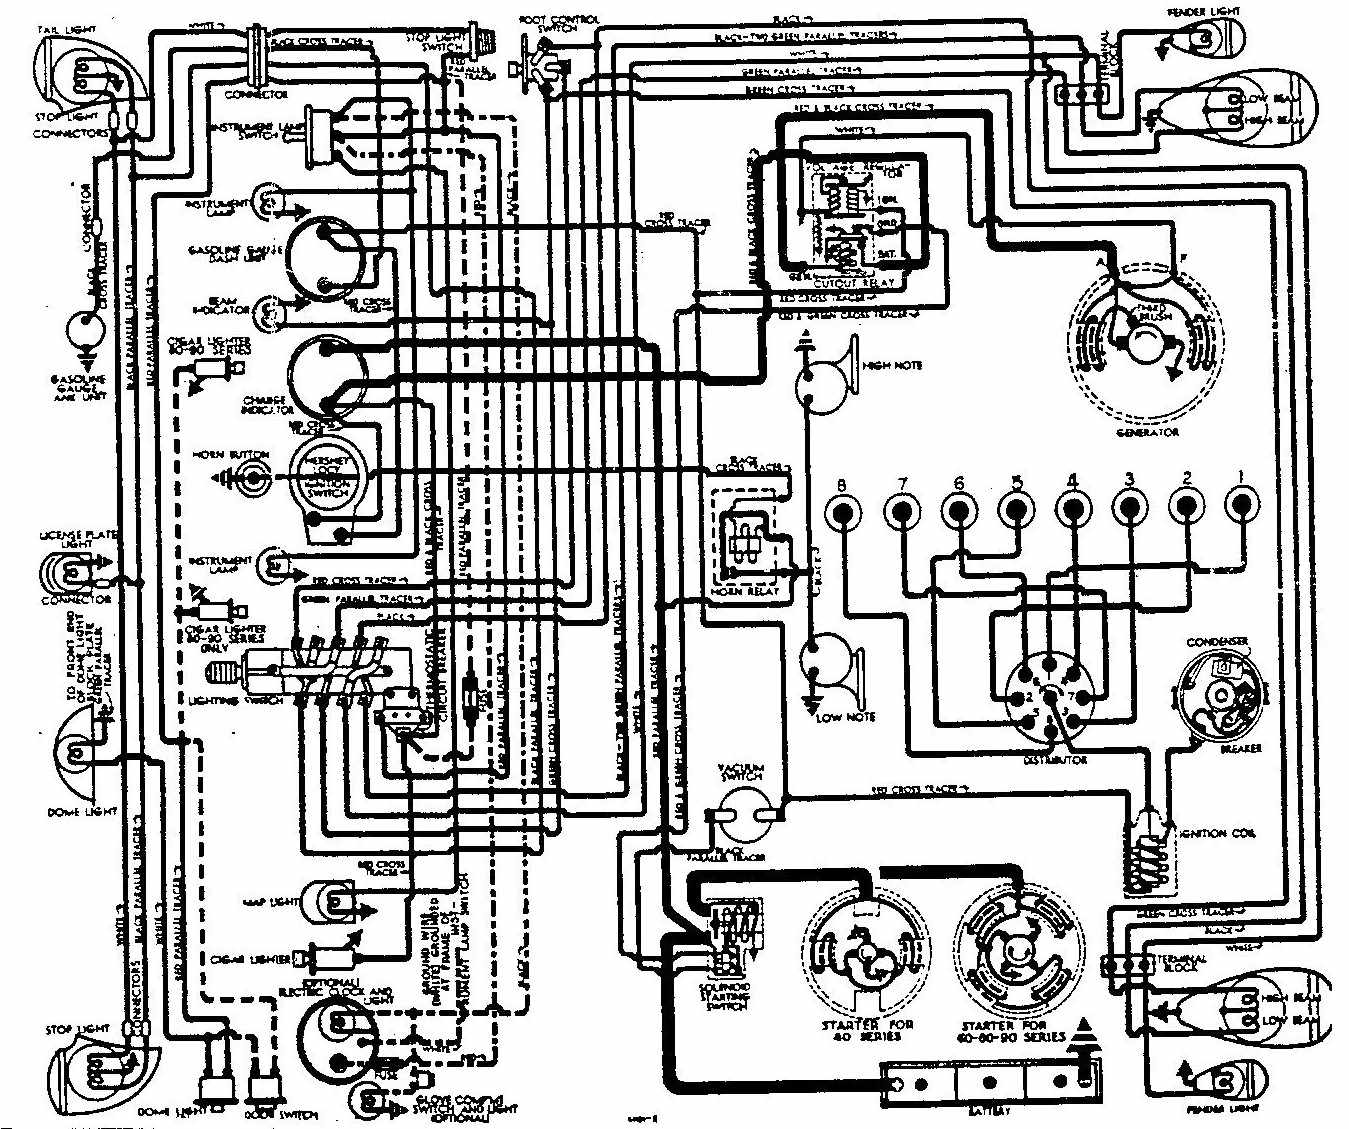 Sensational Illustration Of Hand Drawn Diagram For Project Development 100874272 Wiring 101 Akebretraxxcnl